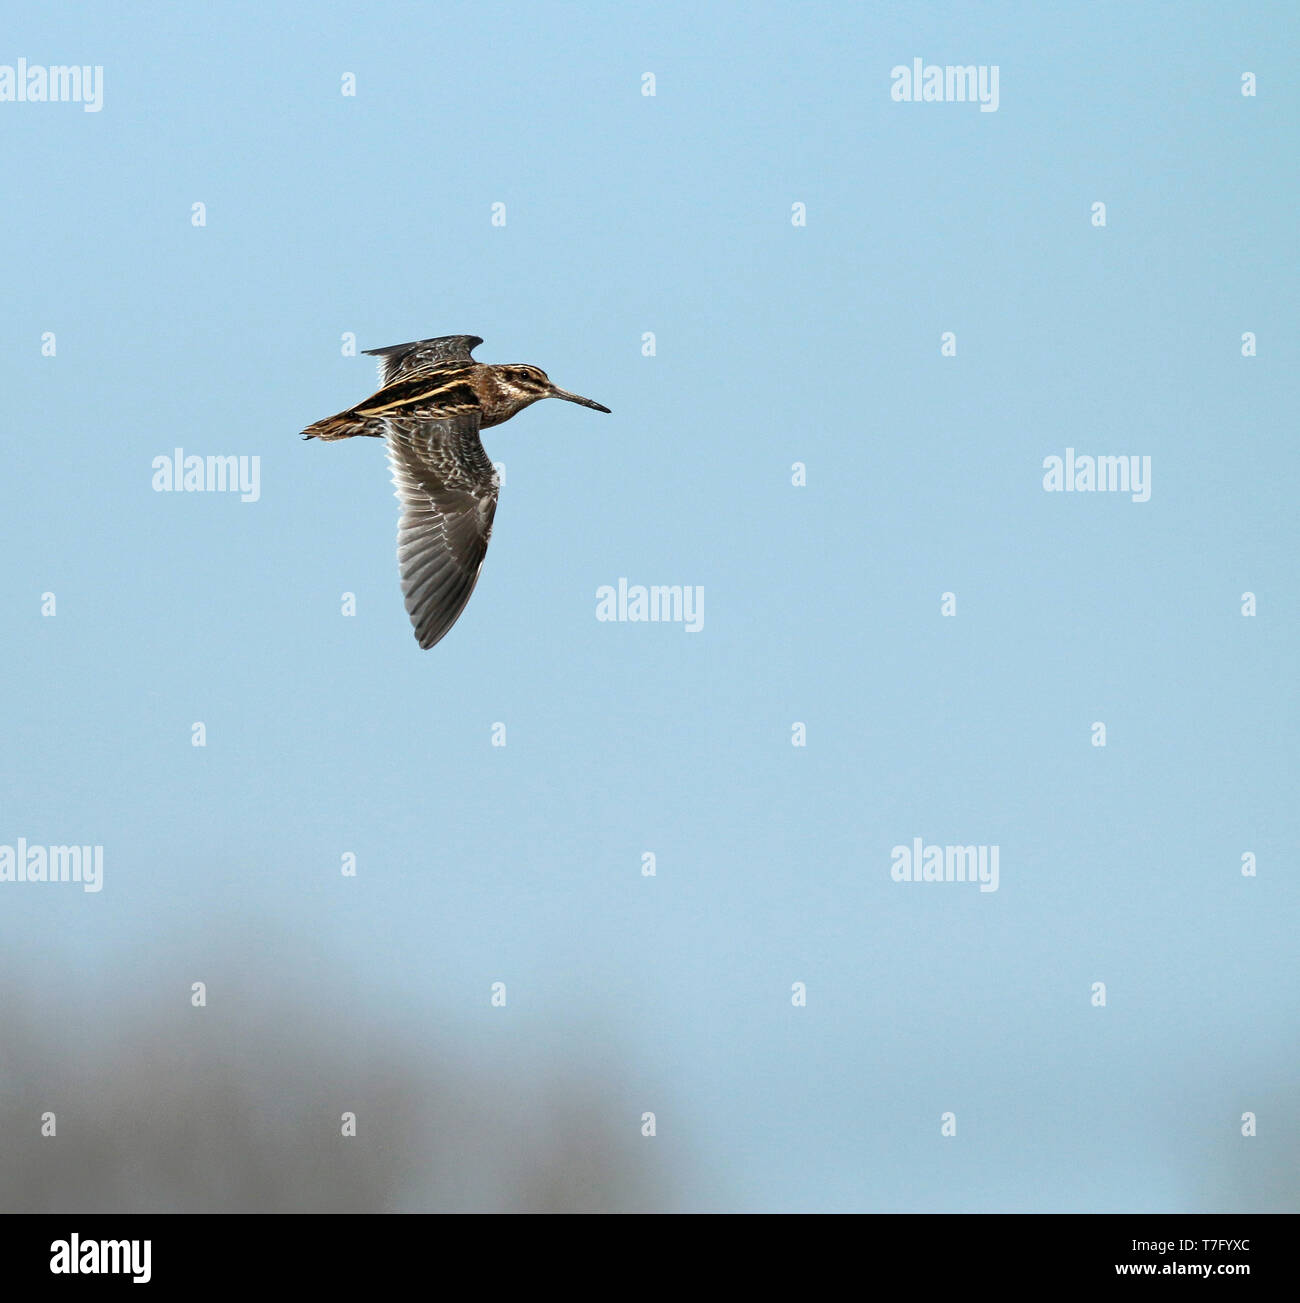 Jack Snipe (Lymnocryptes minimus) in flight, seen from the side and showing upperwing. Stock Photo